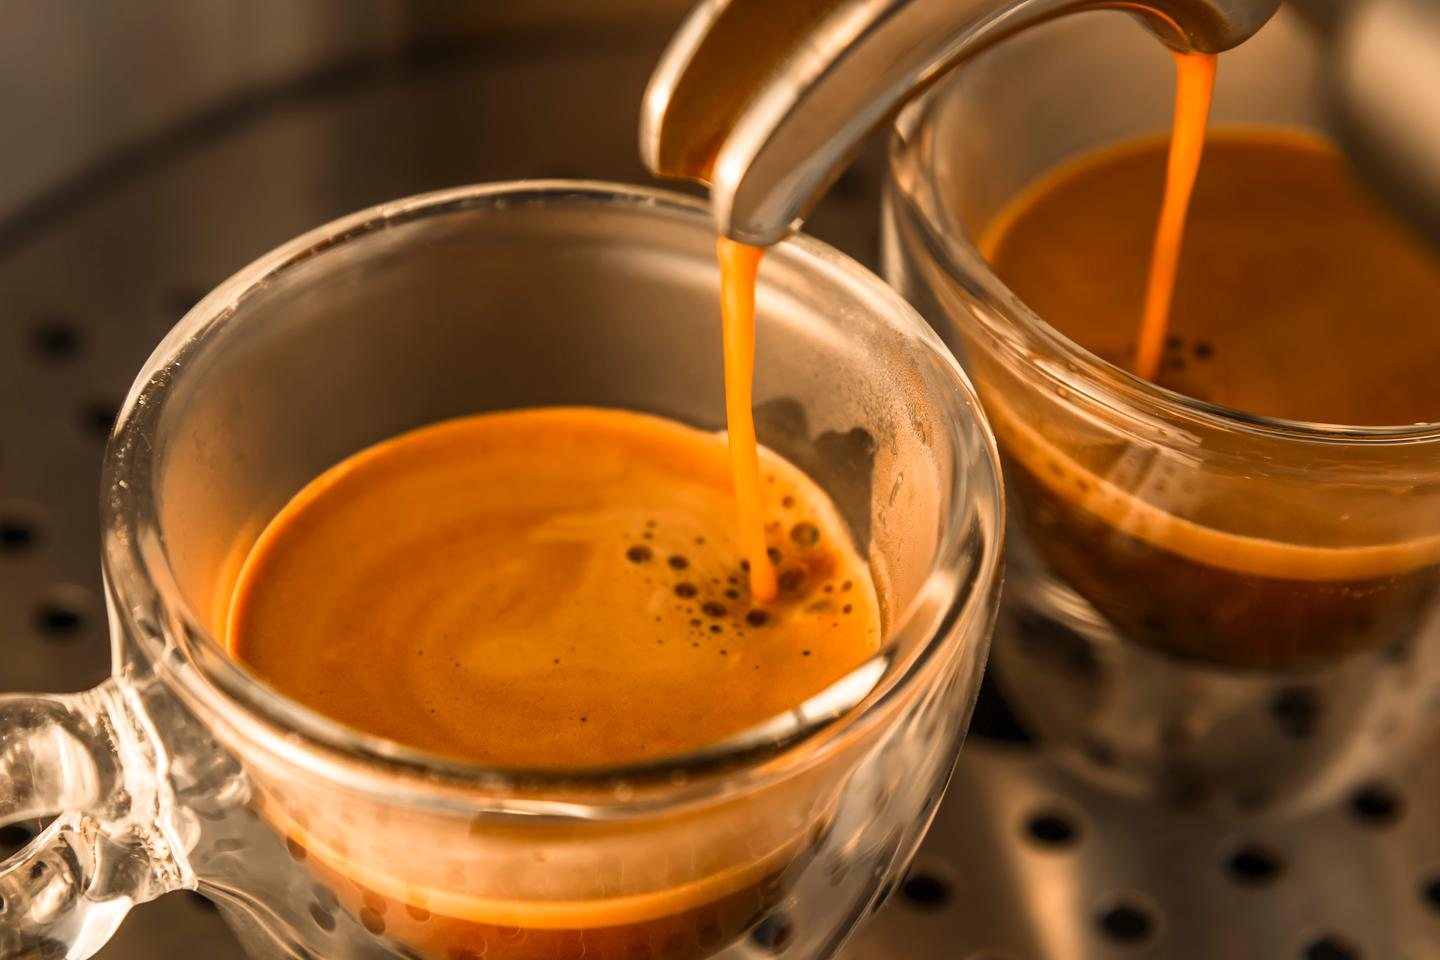 What makes the ideal espresso? Scientists think they have the answer